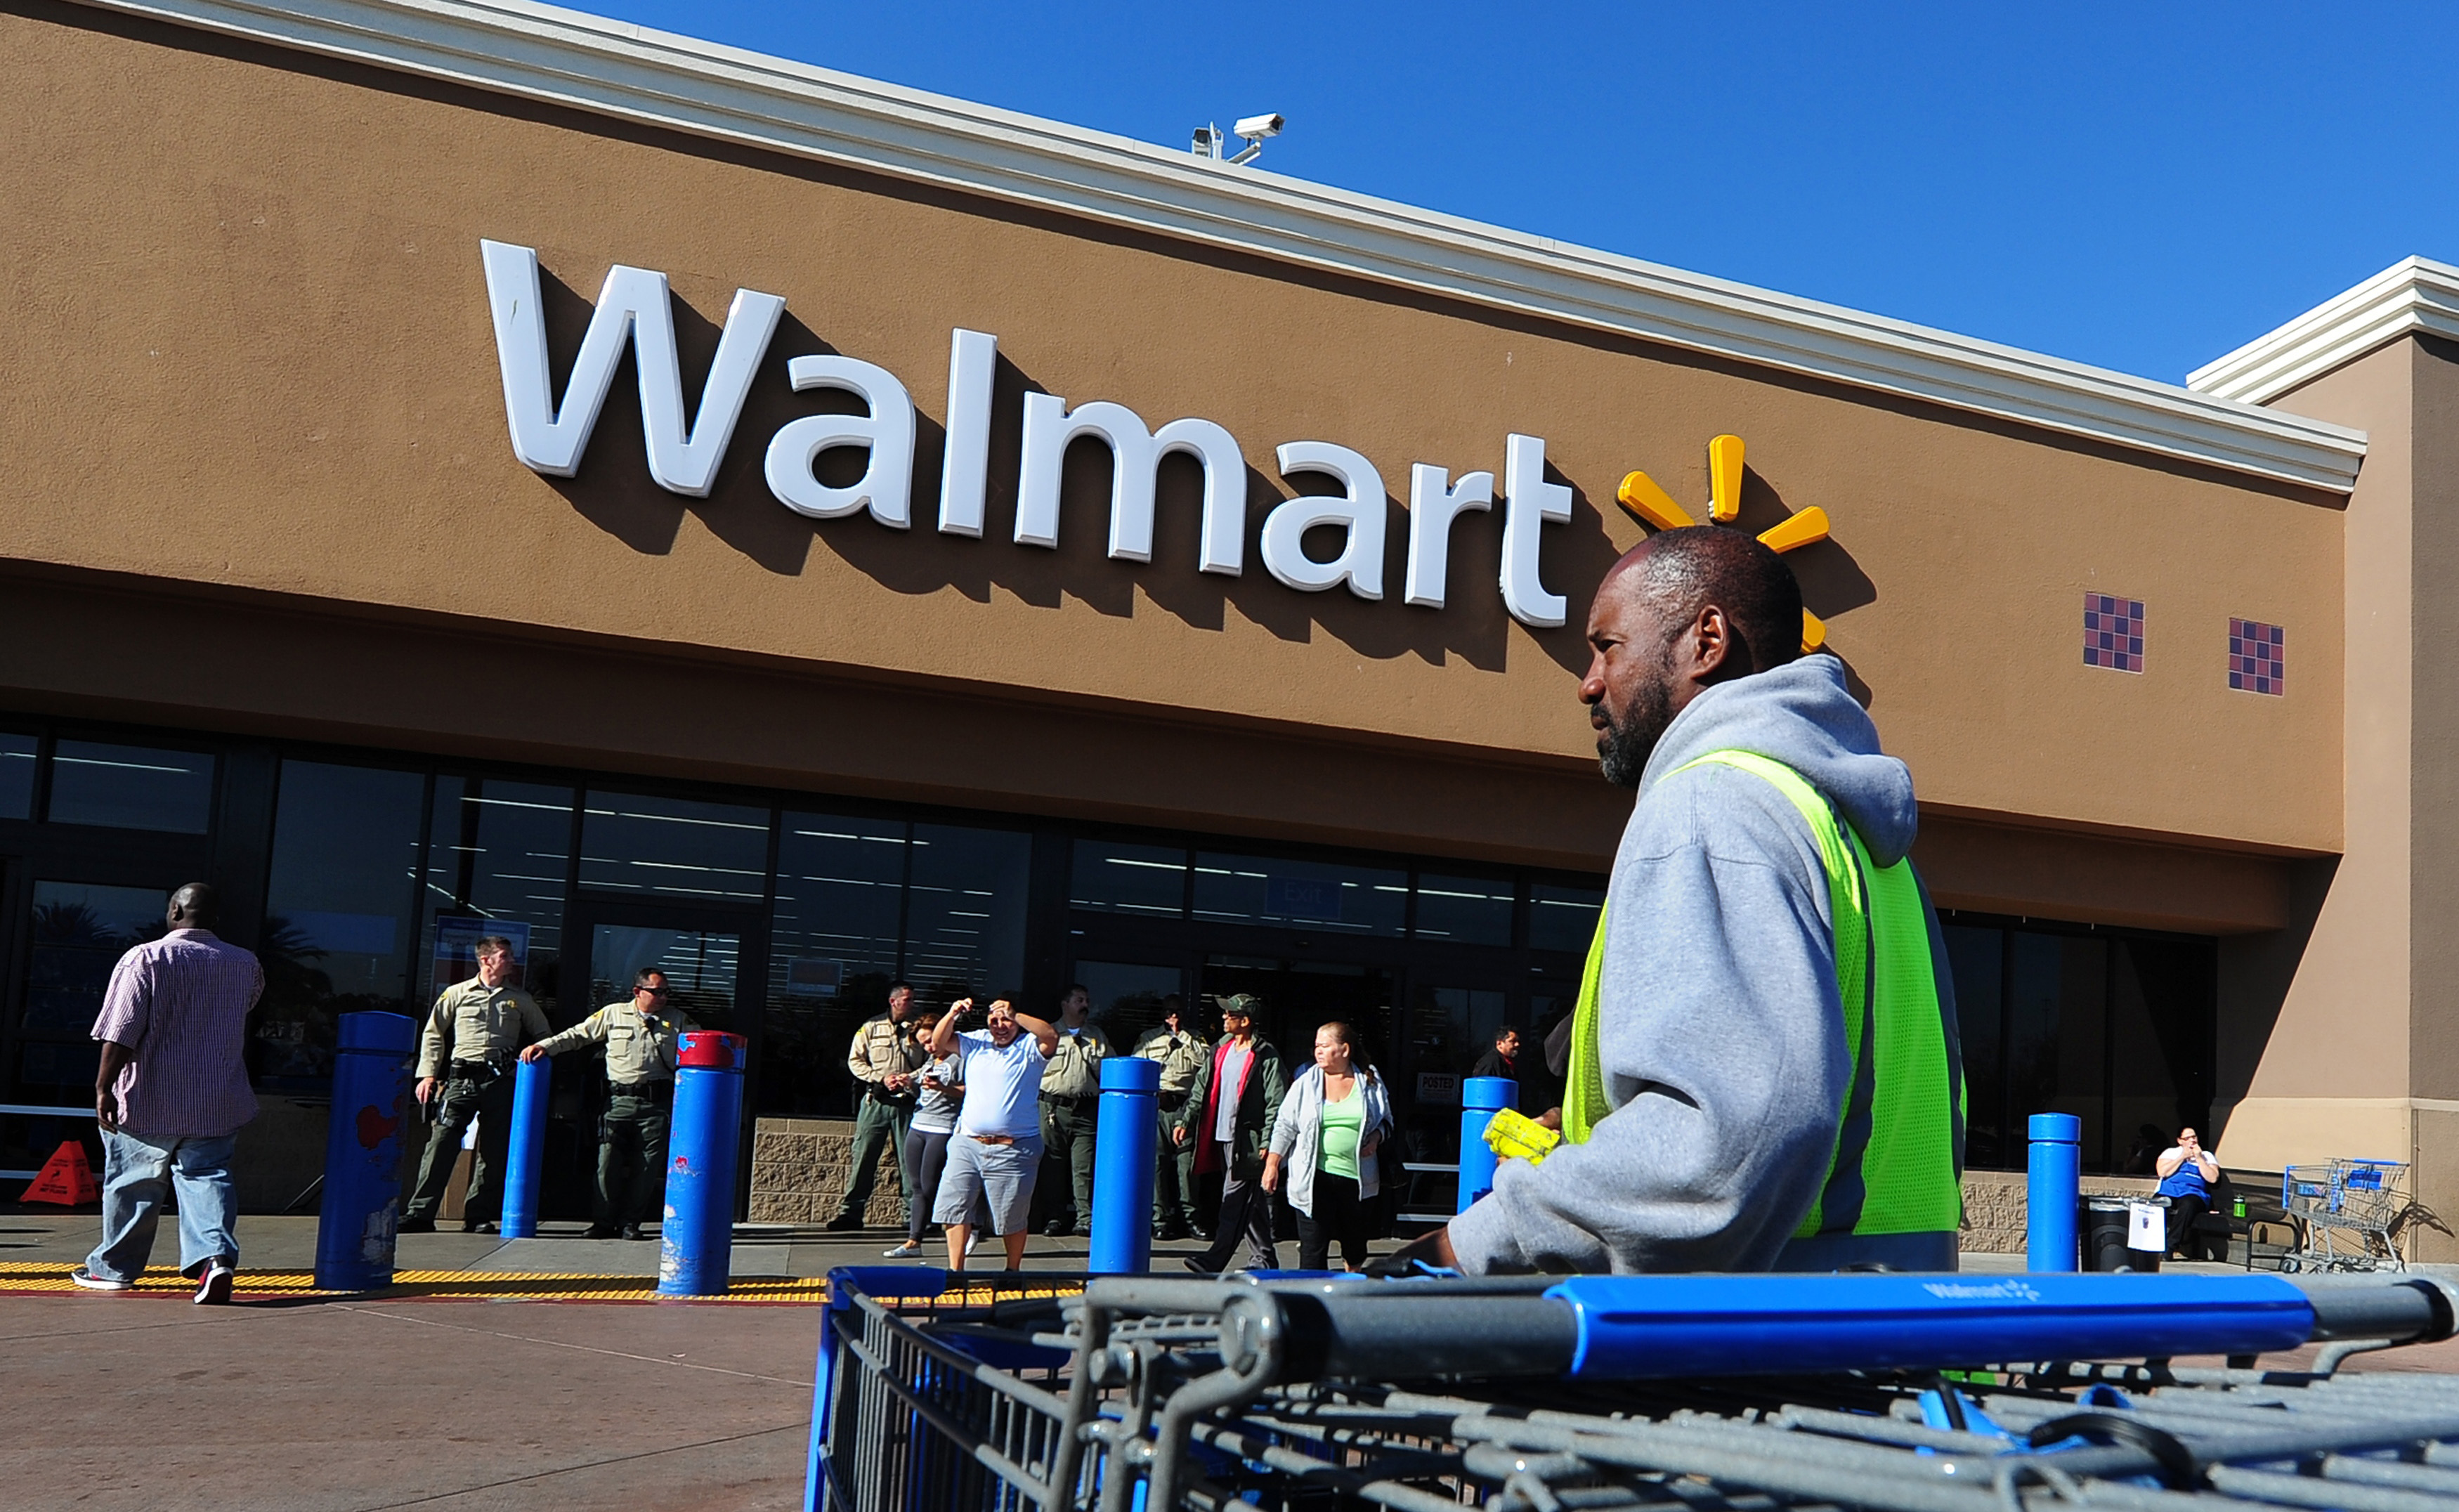 A Walmart employee gathers pushcarts as police man the front of a Walmart store amid heightened Black Friday security in Paramount, California on November 23, 2012 as Walmart employees and their supoorters protested nearby. The US retail giant Walmart admitted on November 27 some of its products were made at the Bangladesh garment factory that burnt down at the weekend killing 110 workers, as anger grows over lax safety standards. The fire broke out at the ground-floor warehouse of the multi-storey Tazreen Fashions factory 30 kilometres (18 miles) north of Dhaka on the night of November 24, trapping hundreds of workers on the upper upper floors, police said.  AFP PHOTO / Frederic J. BROWN        (Photo credit should read FREDERIC J. BROWN/AFP/Getty Images)